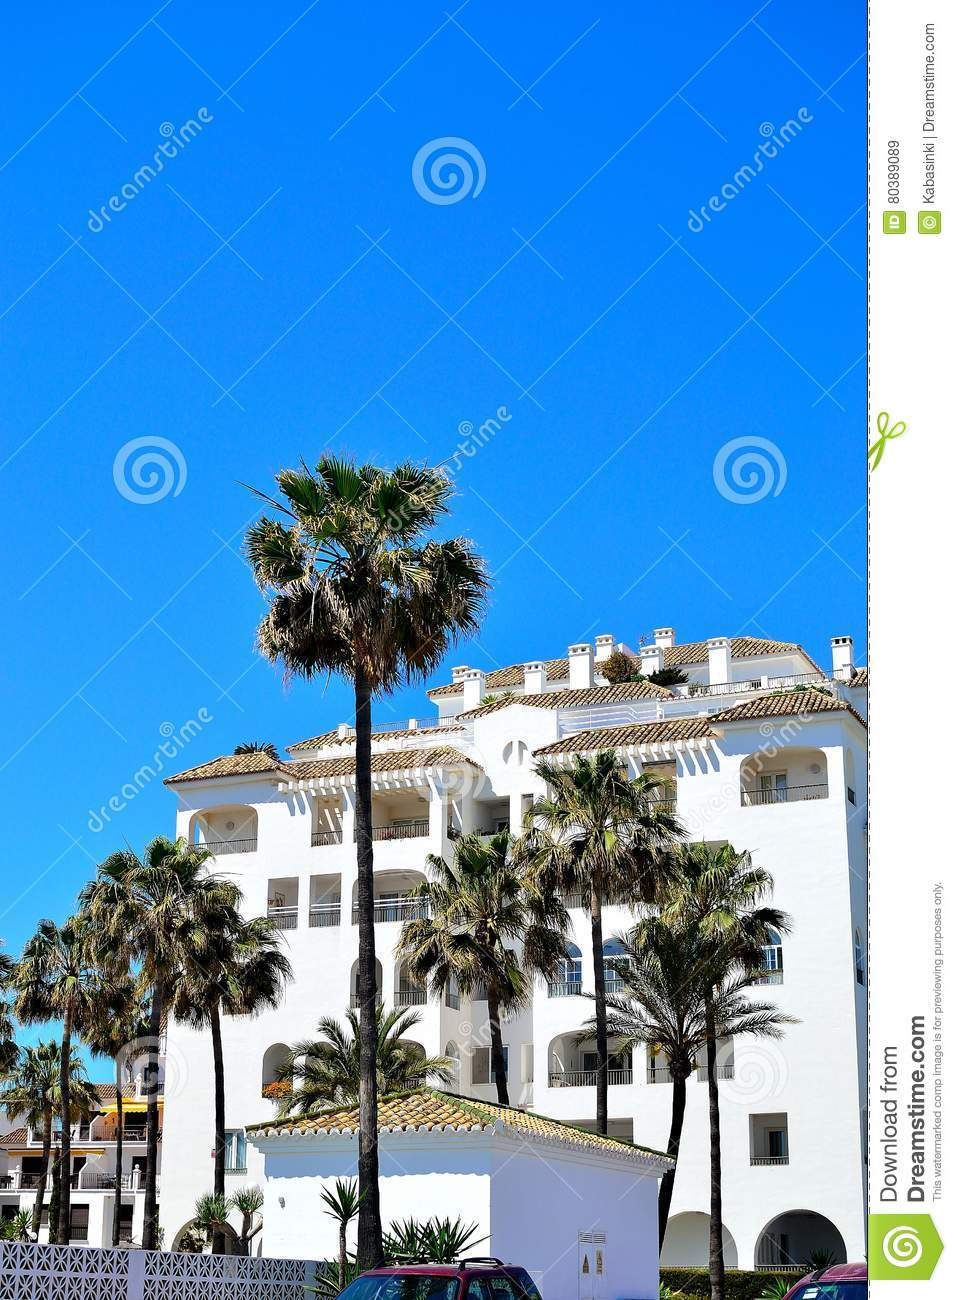 Holiday Apartments In La Duquesa In Spain Editorial Stock ...